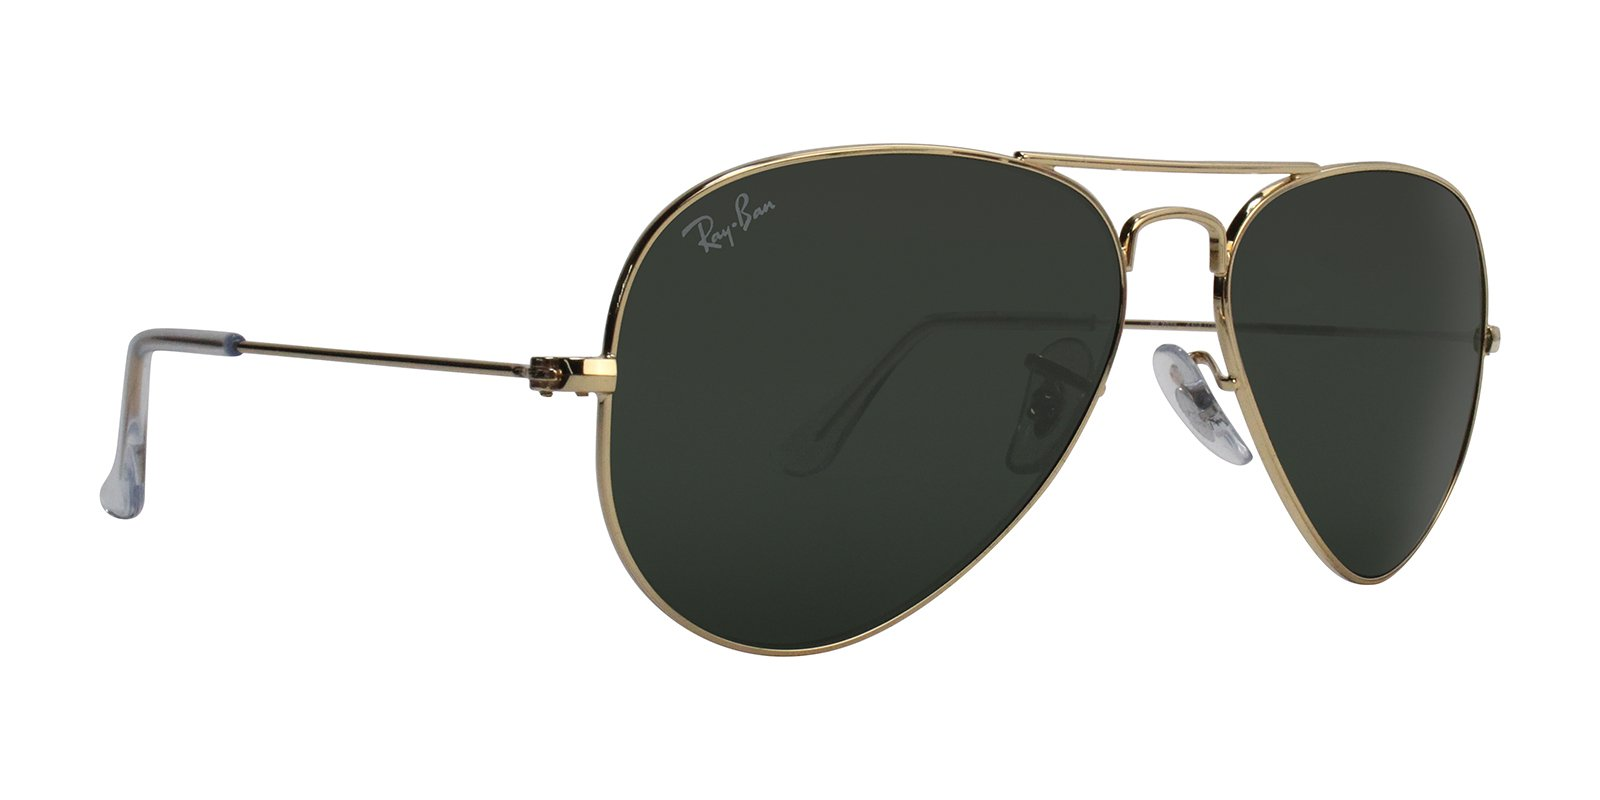 Ray-Ban AVIATOR LARGE METAL - GOLD Frame GREY GREEN Lenses 55mm Non-Polarized